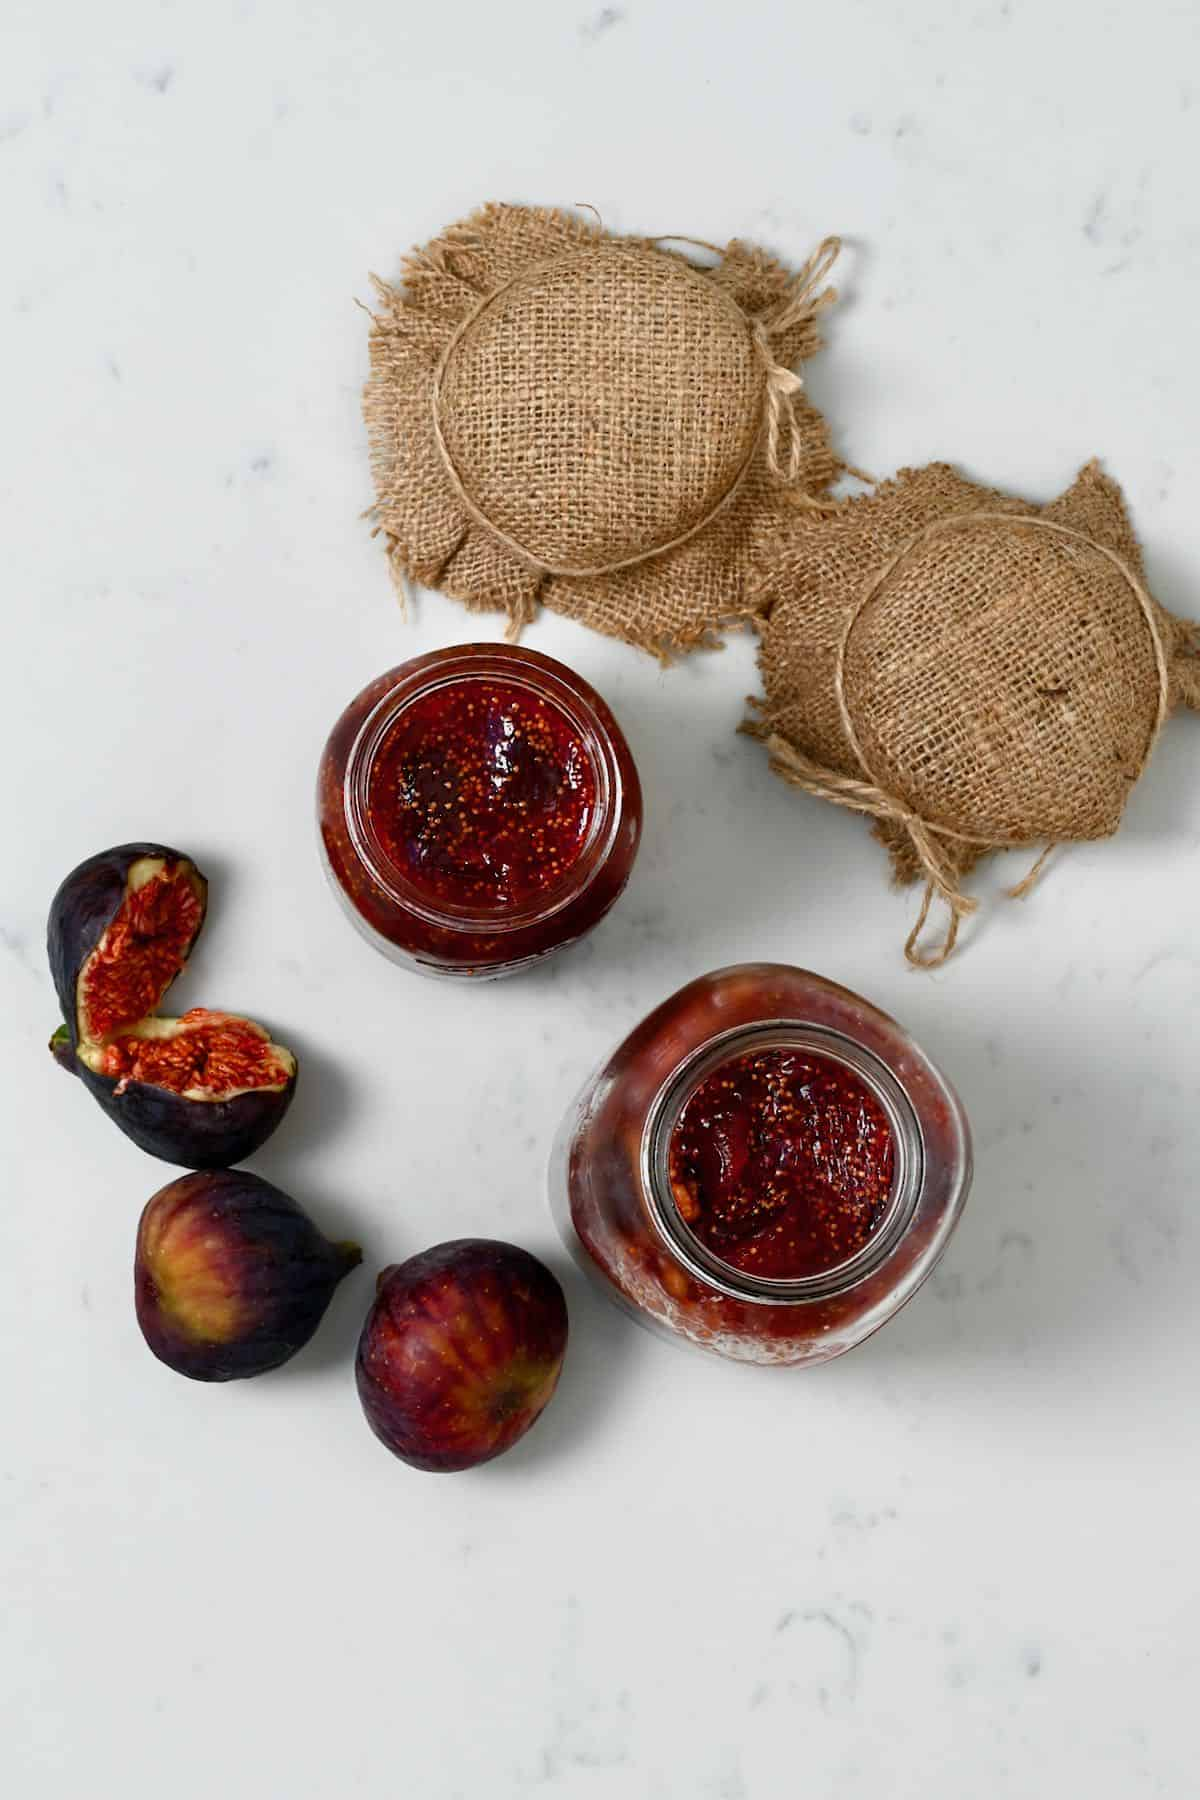 Homemade fig jam in jars and three figs